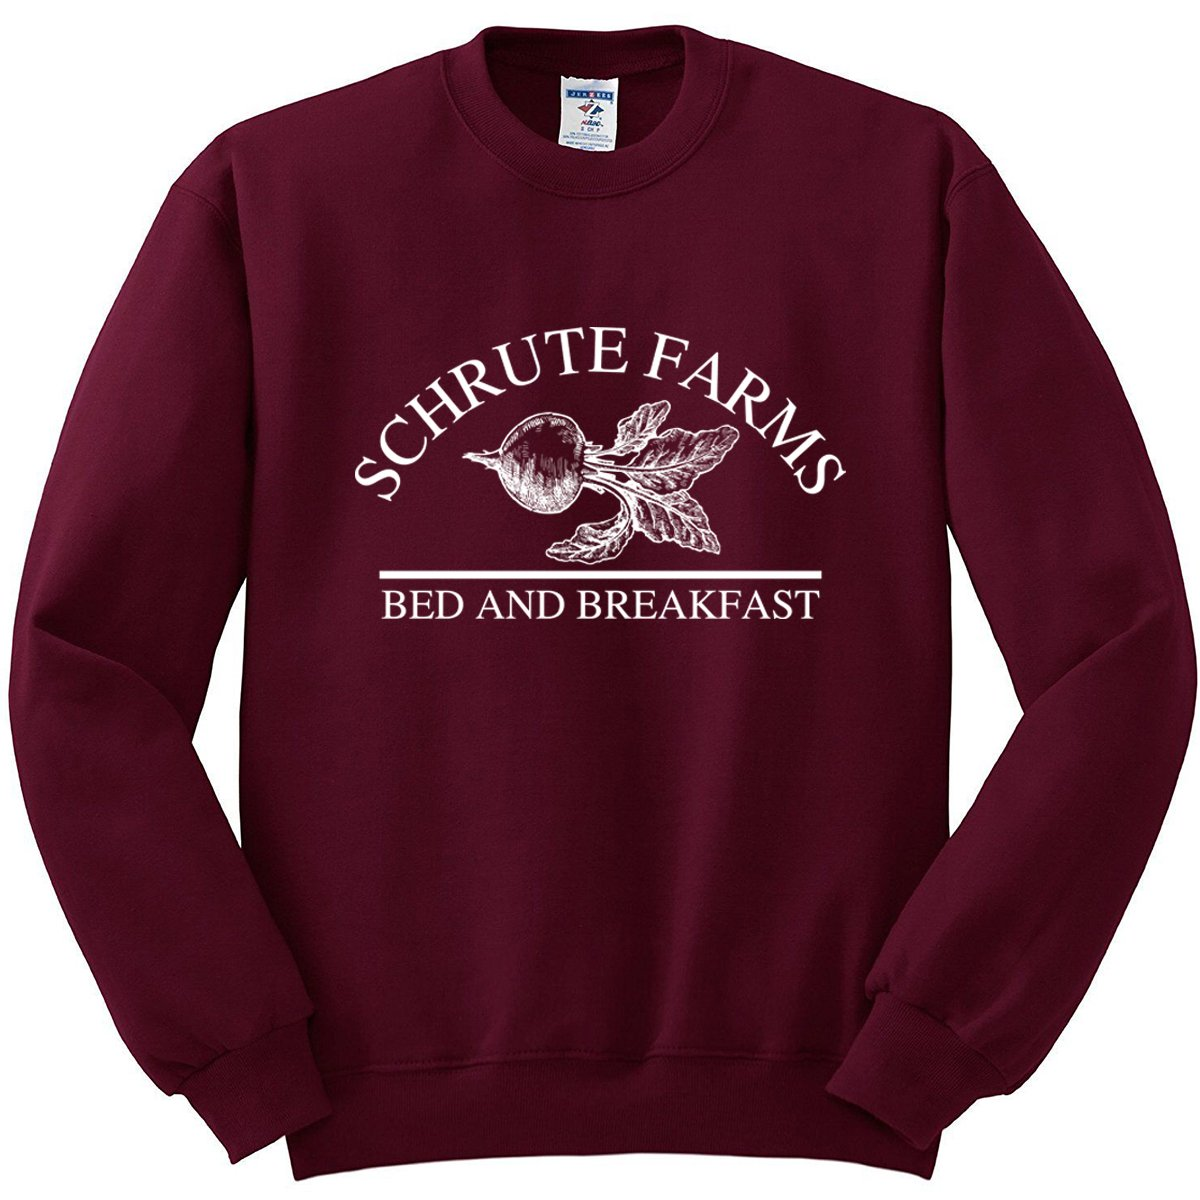 Nuff Said Schrute Farms Beets Bed and Breakfast Sweatshirt Sweater Pullover - Unisex (Medium, Maroon)